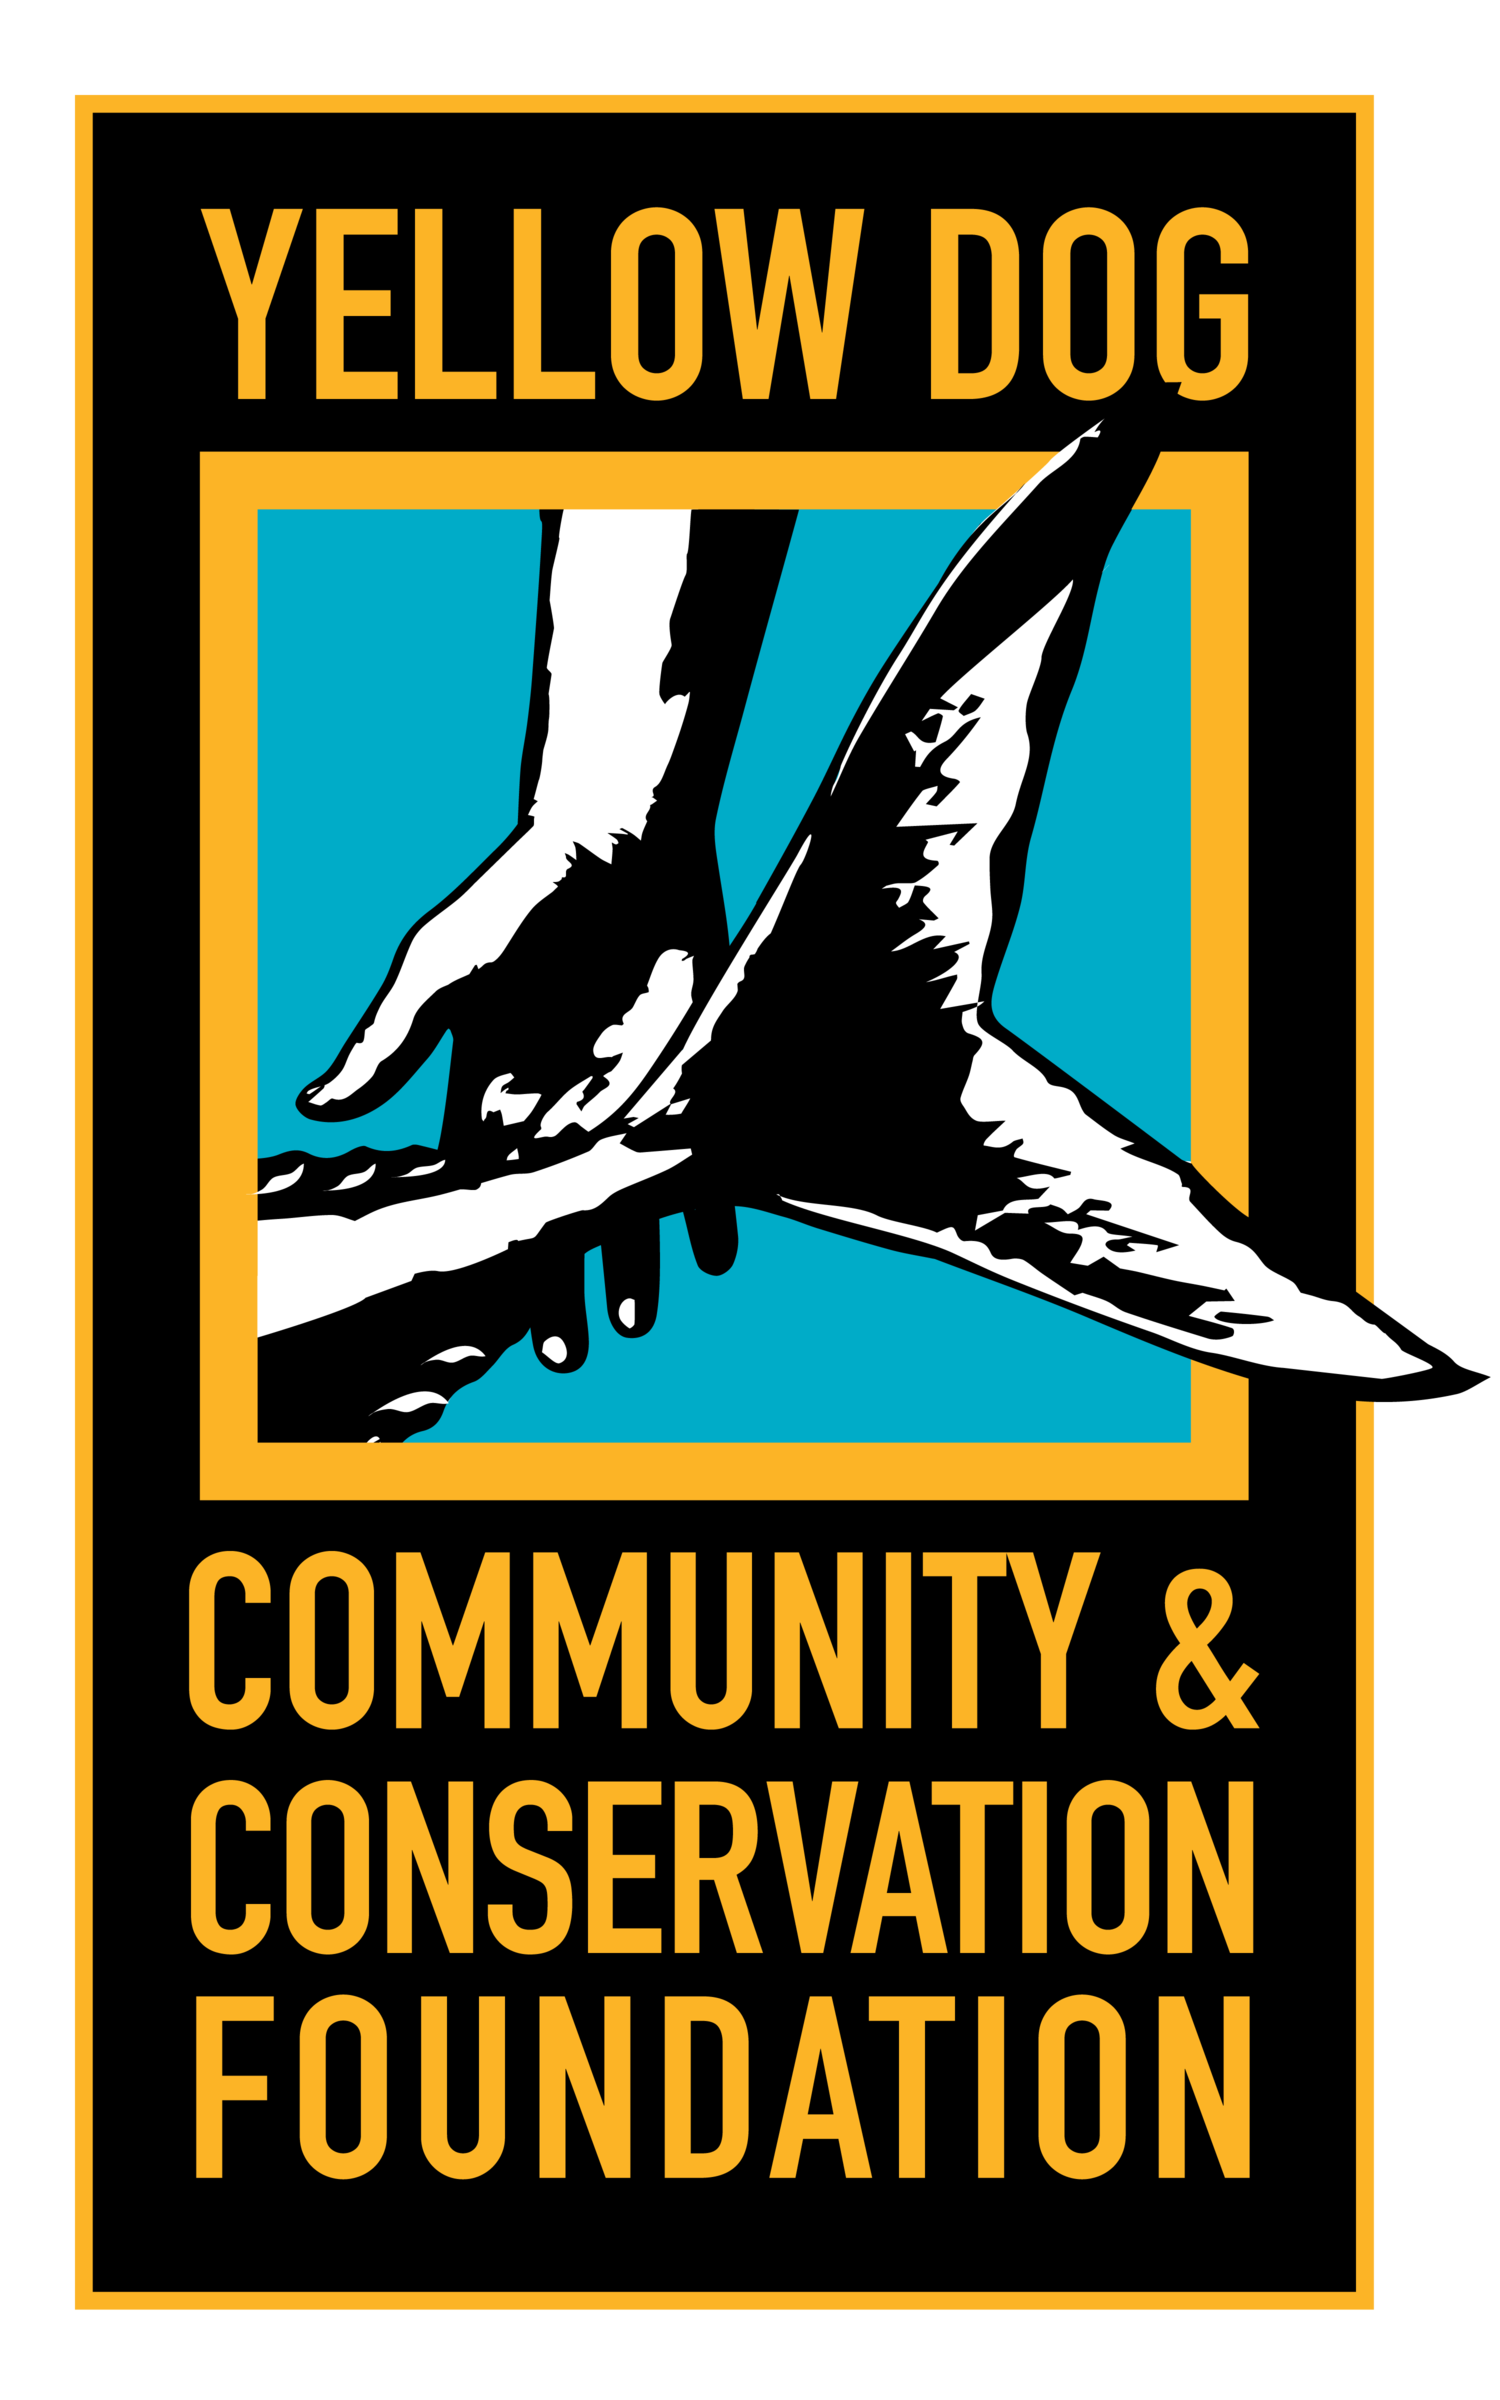 Yellow Dog Community & Conservation Foundation